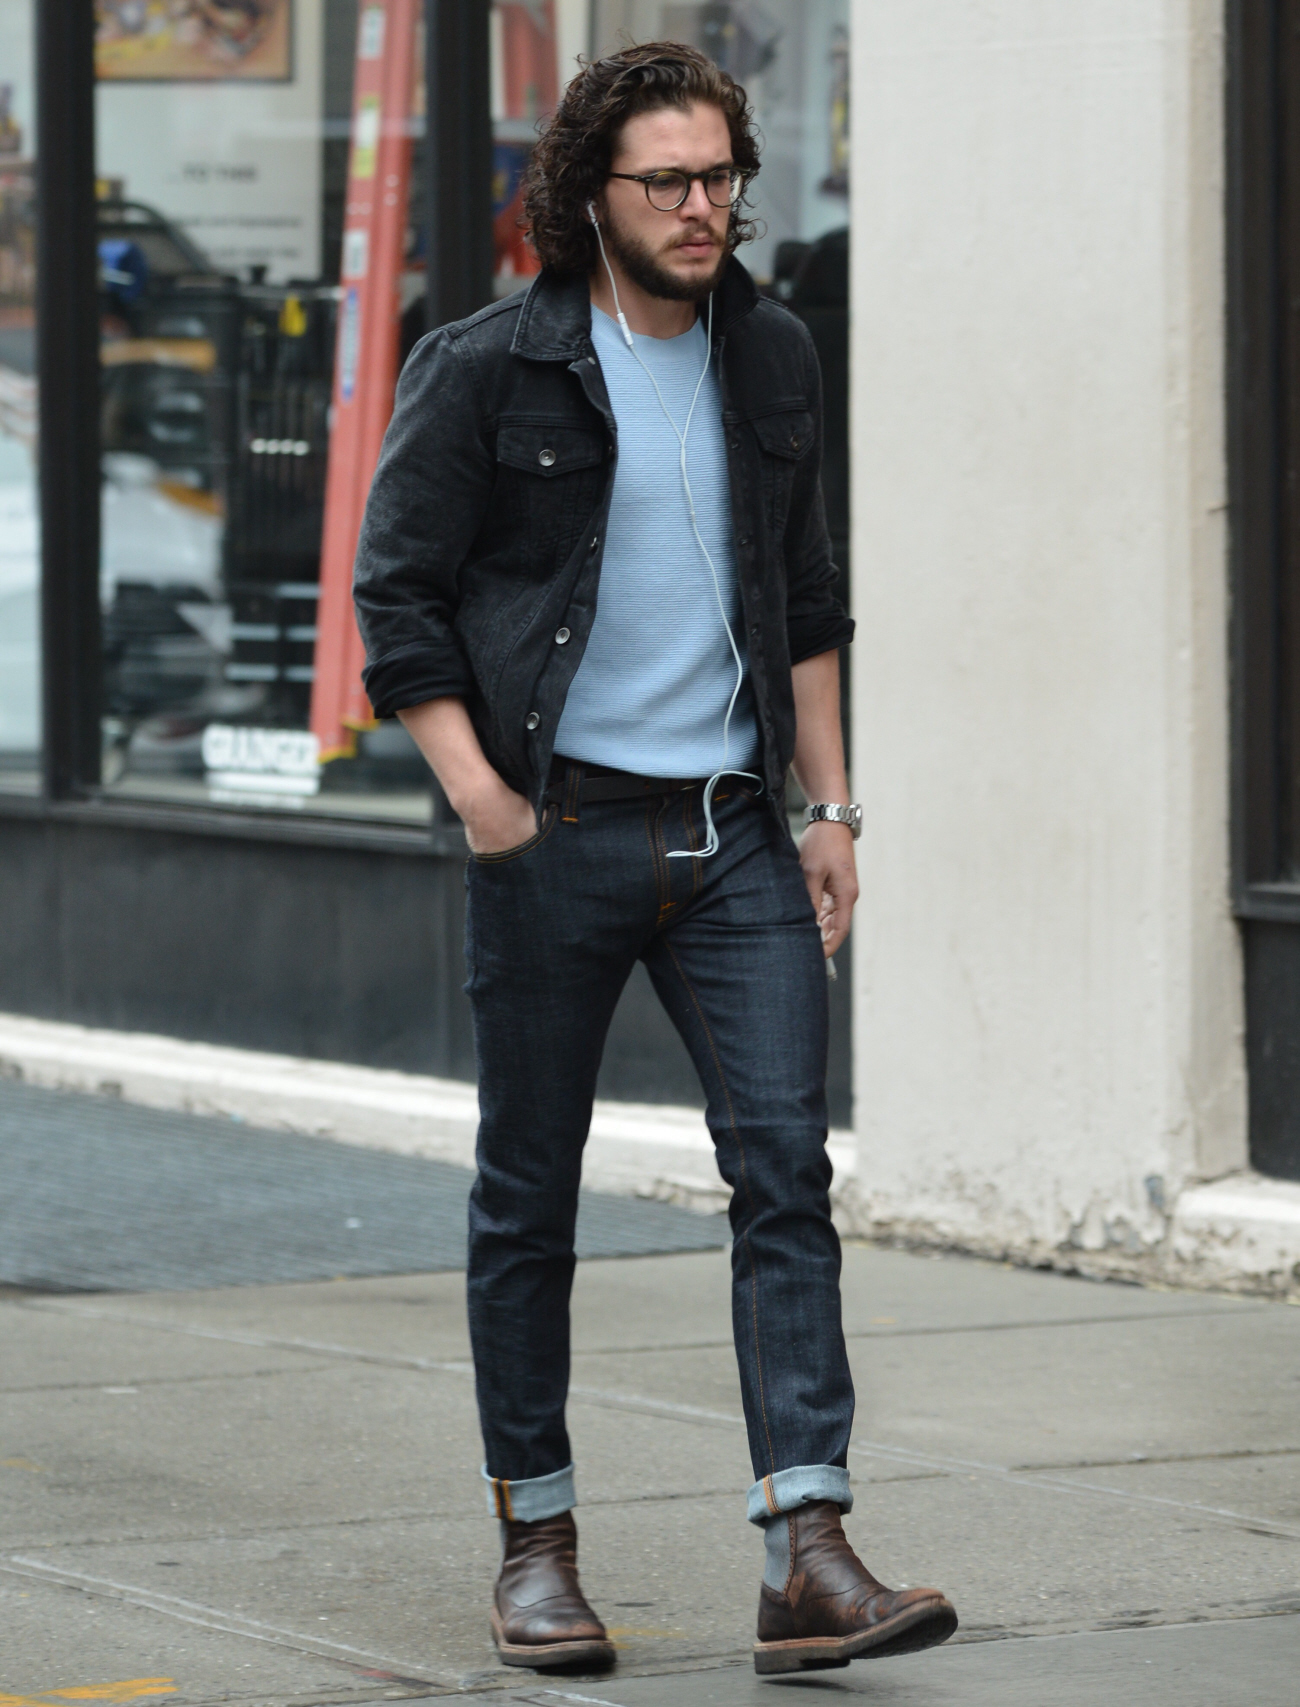 Denim Jacket | Men's Fashion